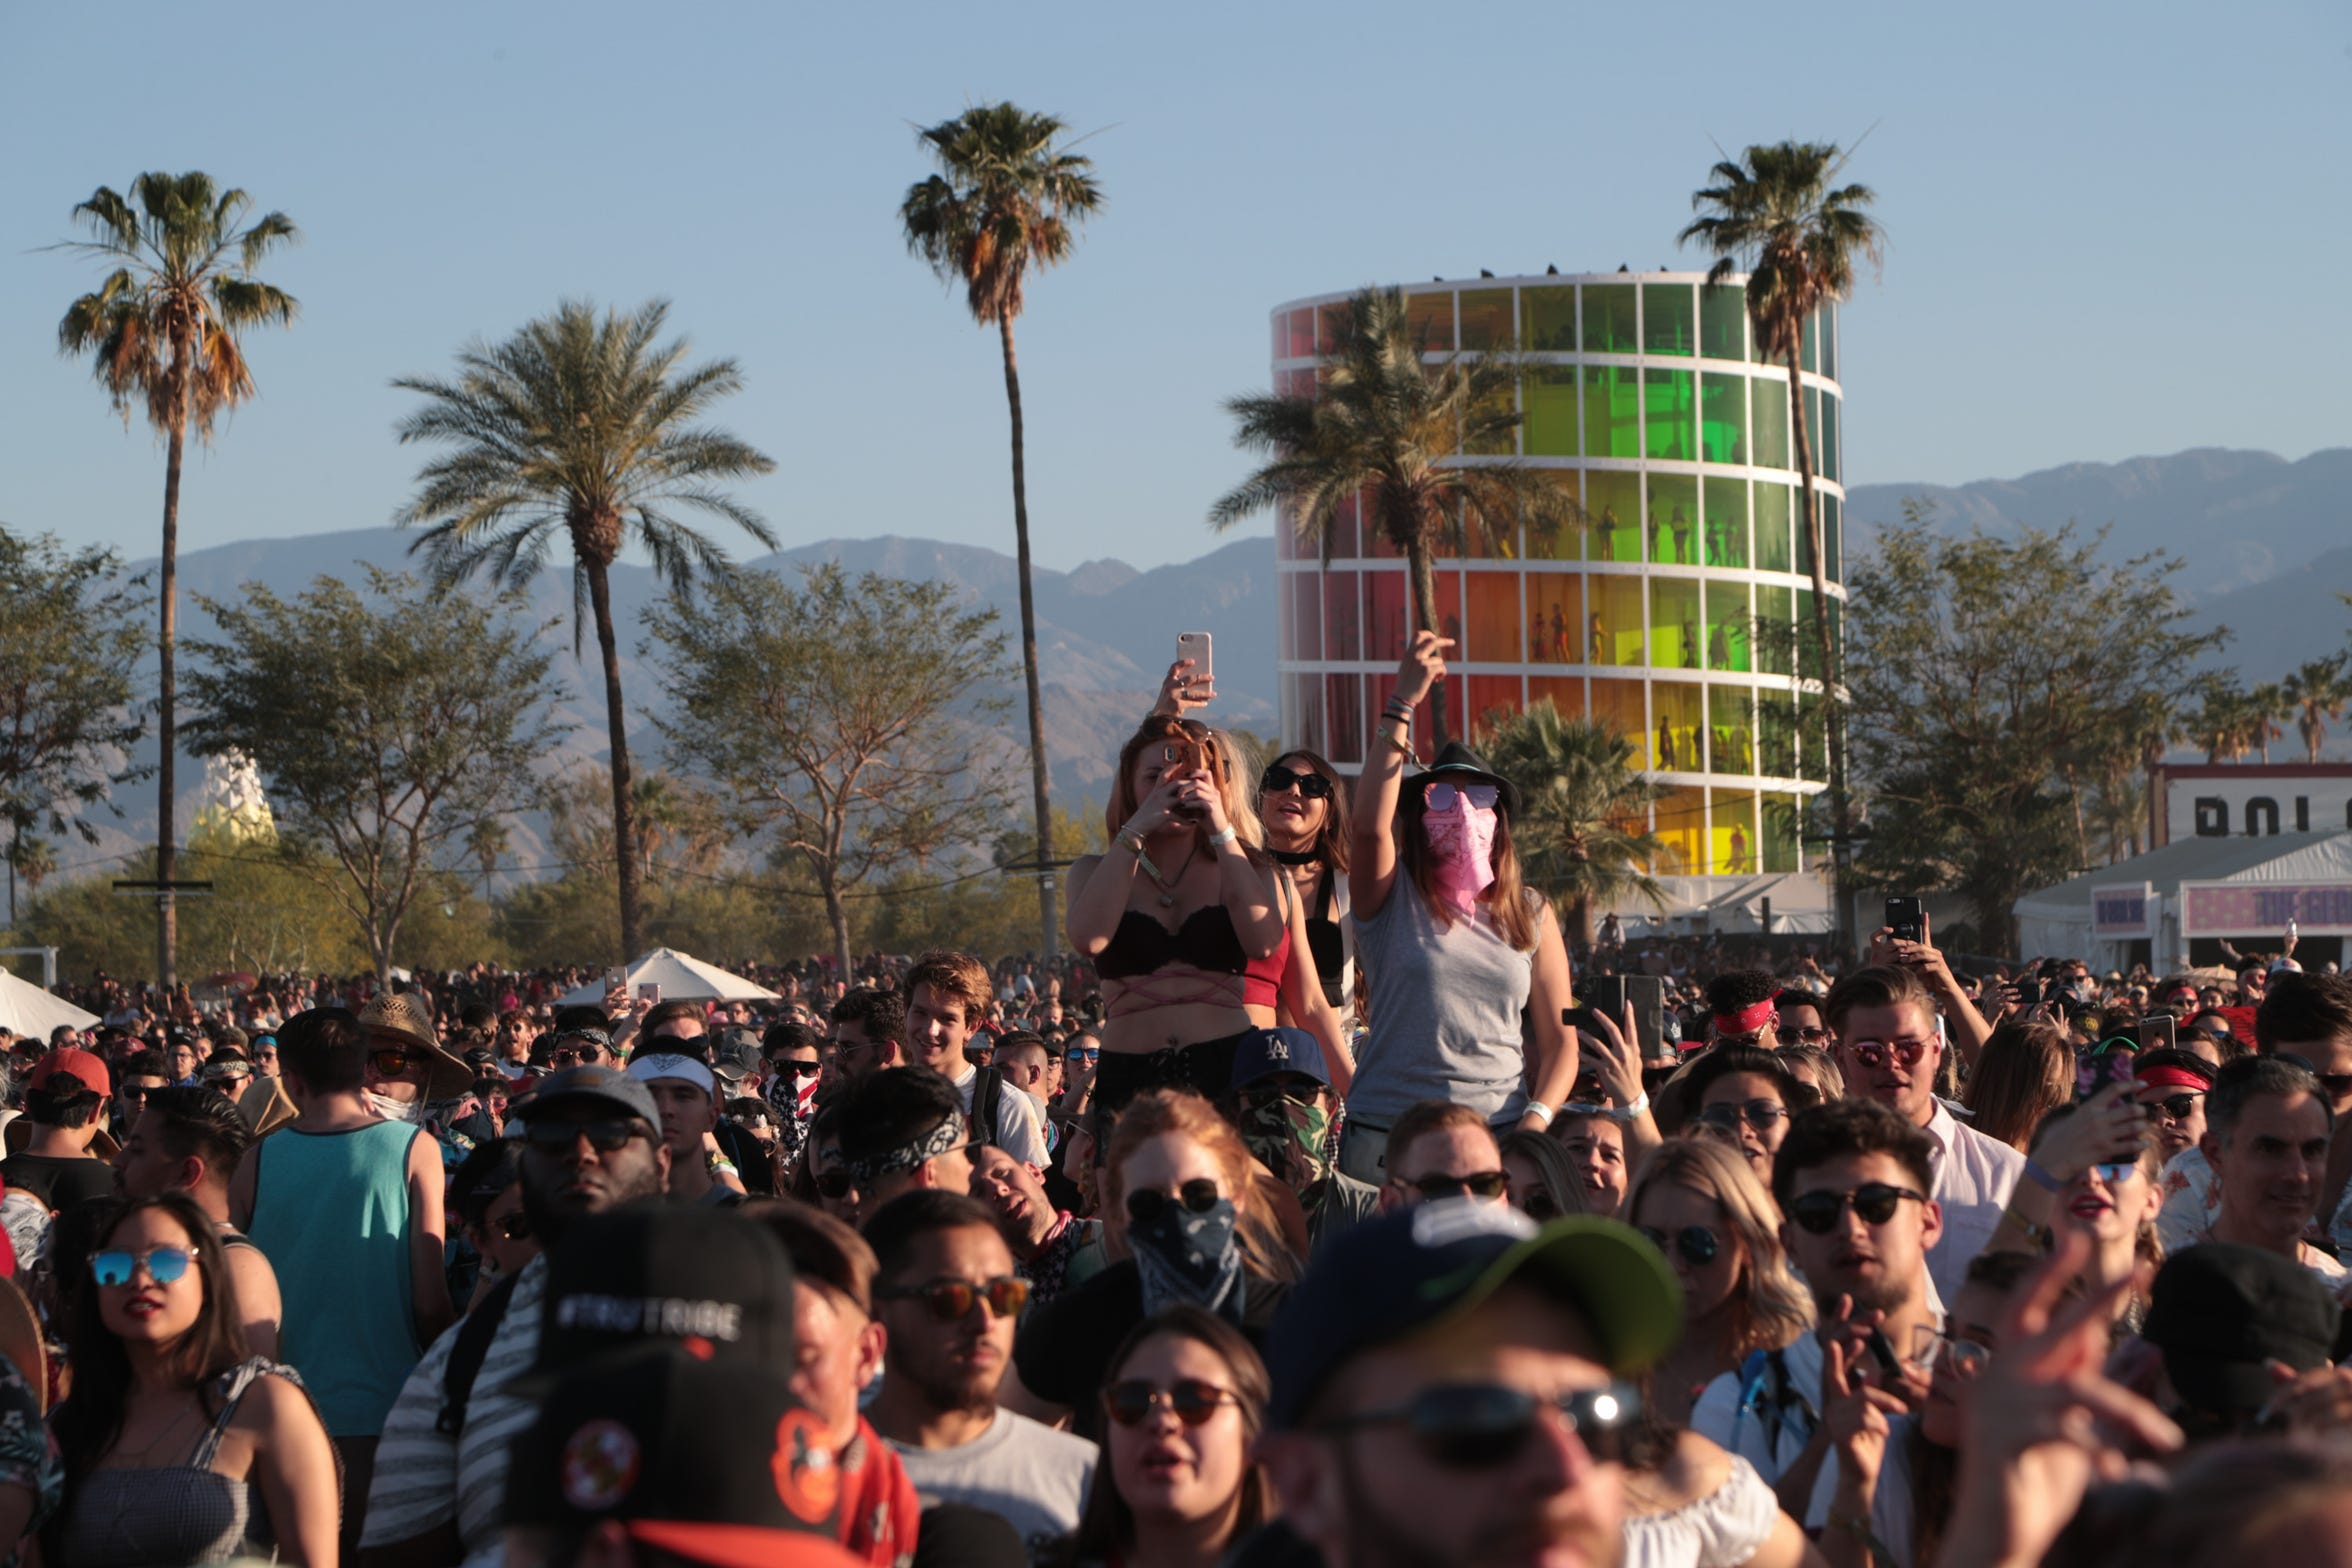 Fans listen to Cardi B perform at the Coachella Valley Music and Arts Festival at Empire Polo Club in Indio, Calif., on April 22, 2018.